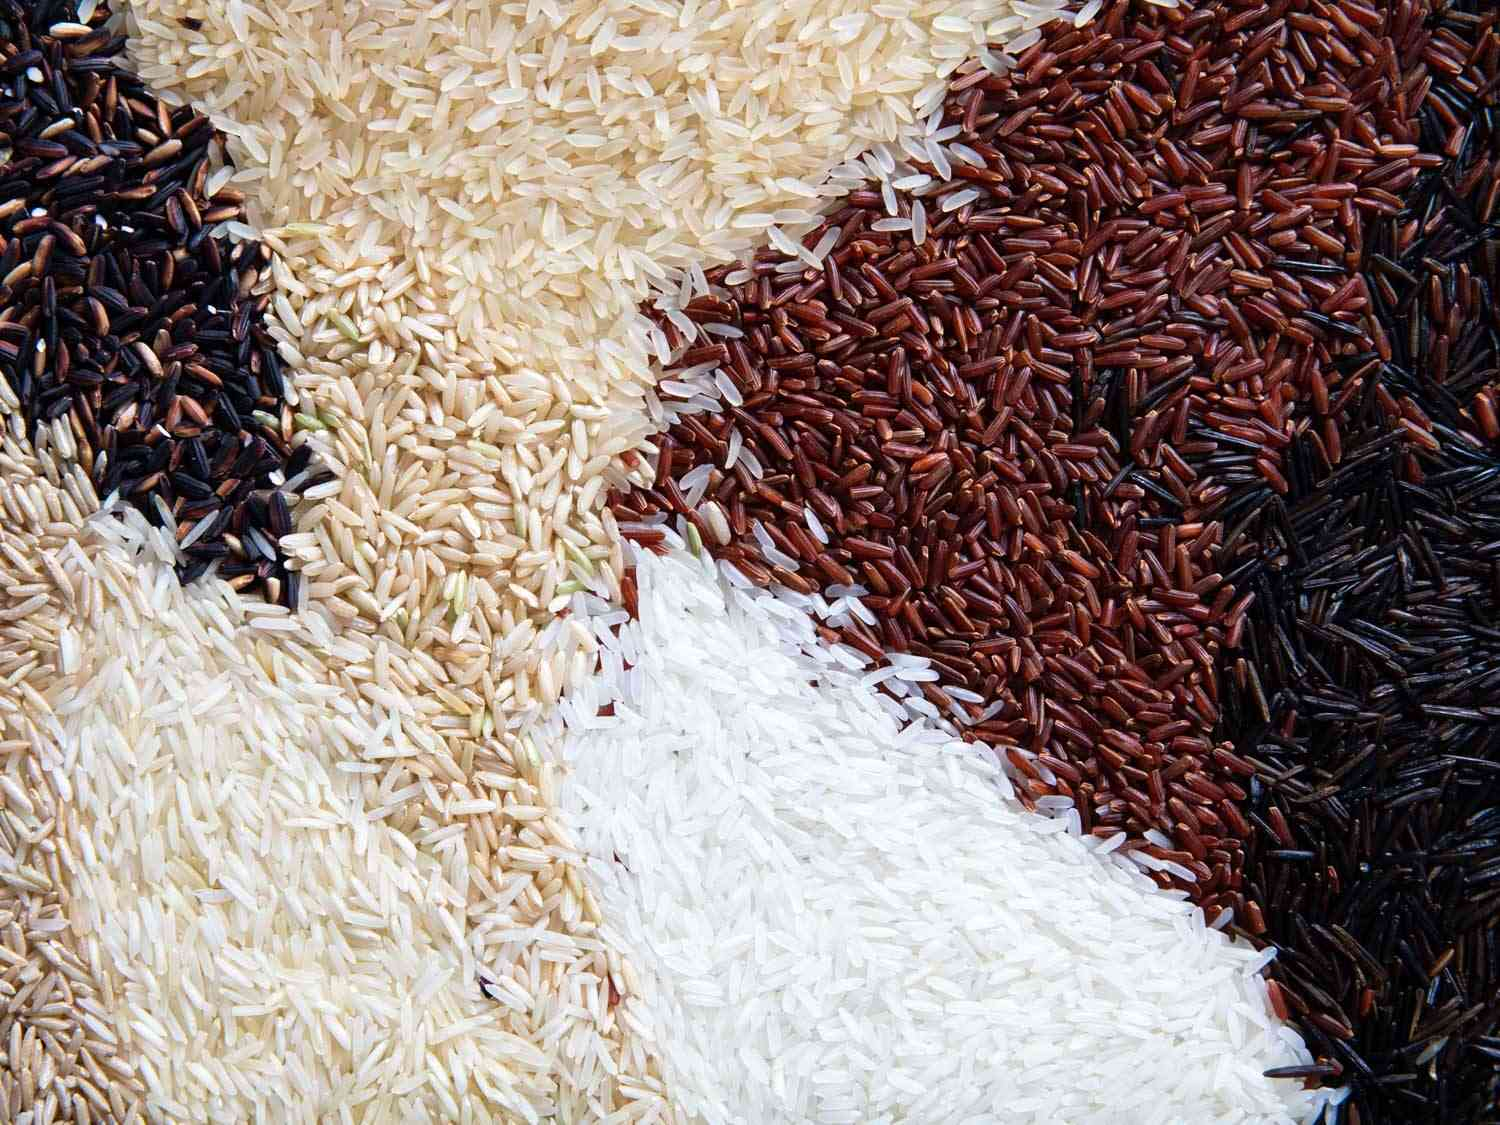 many different varieties of rice spread artfully on a surface